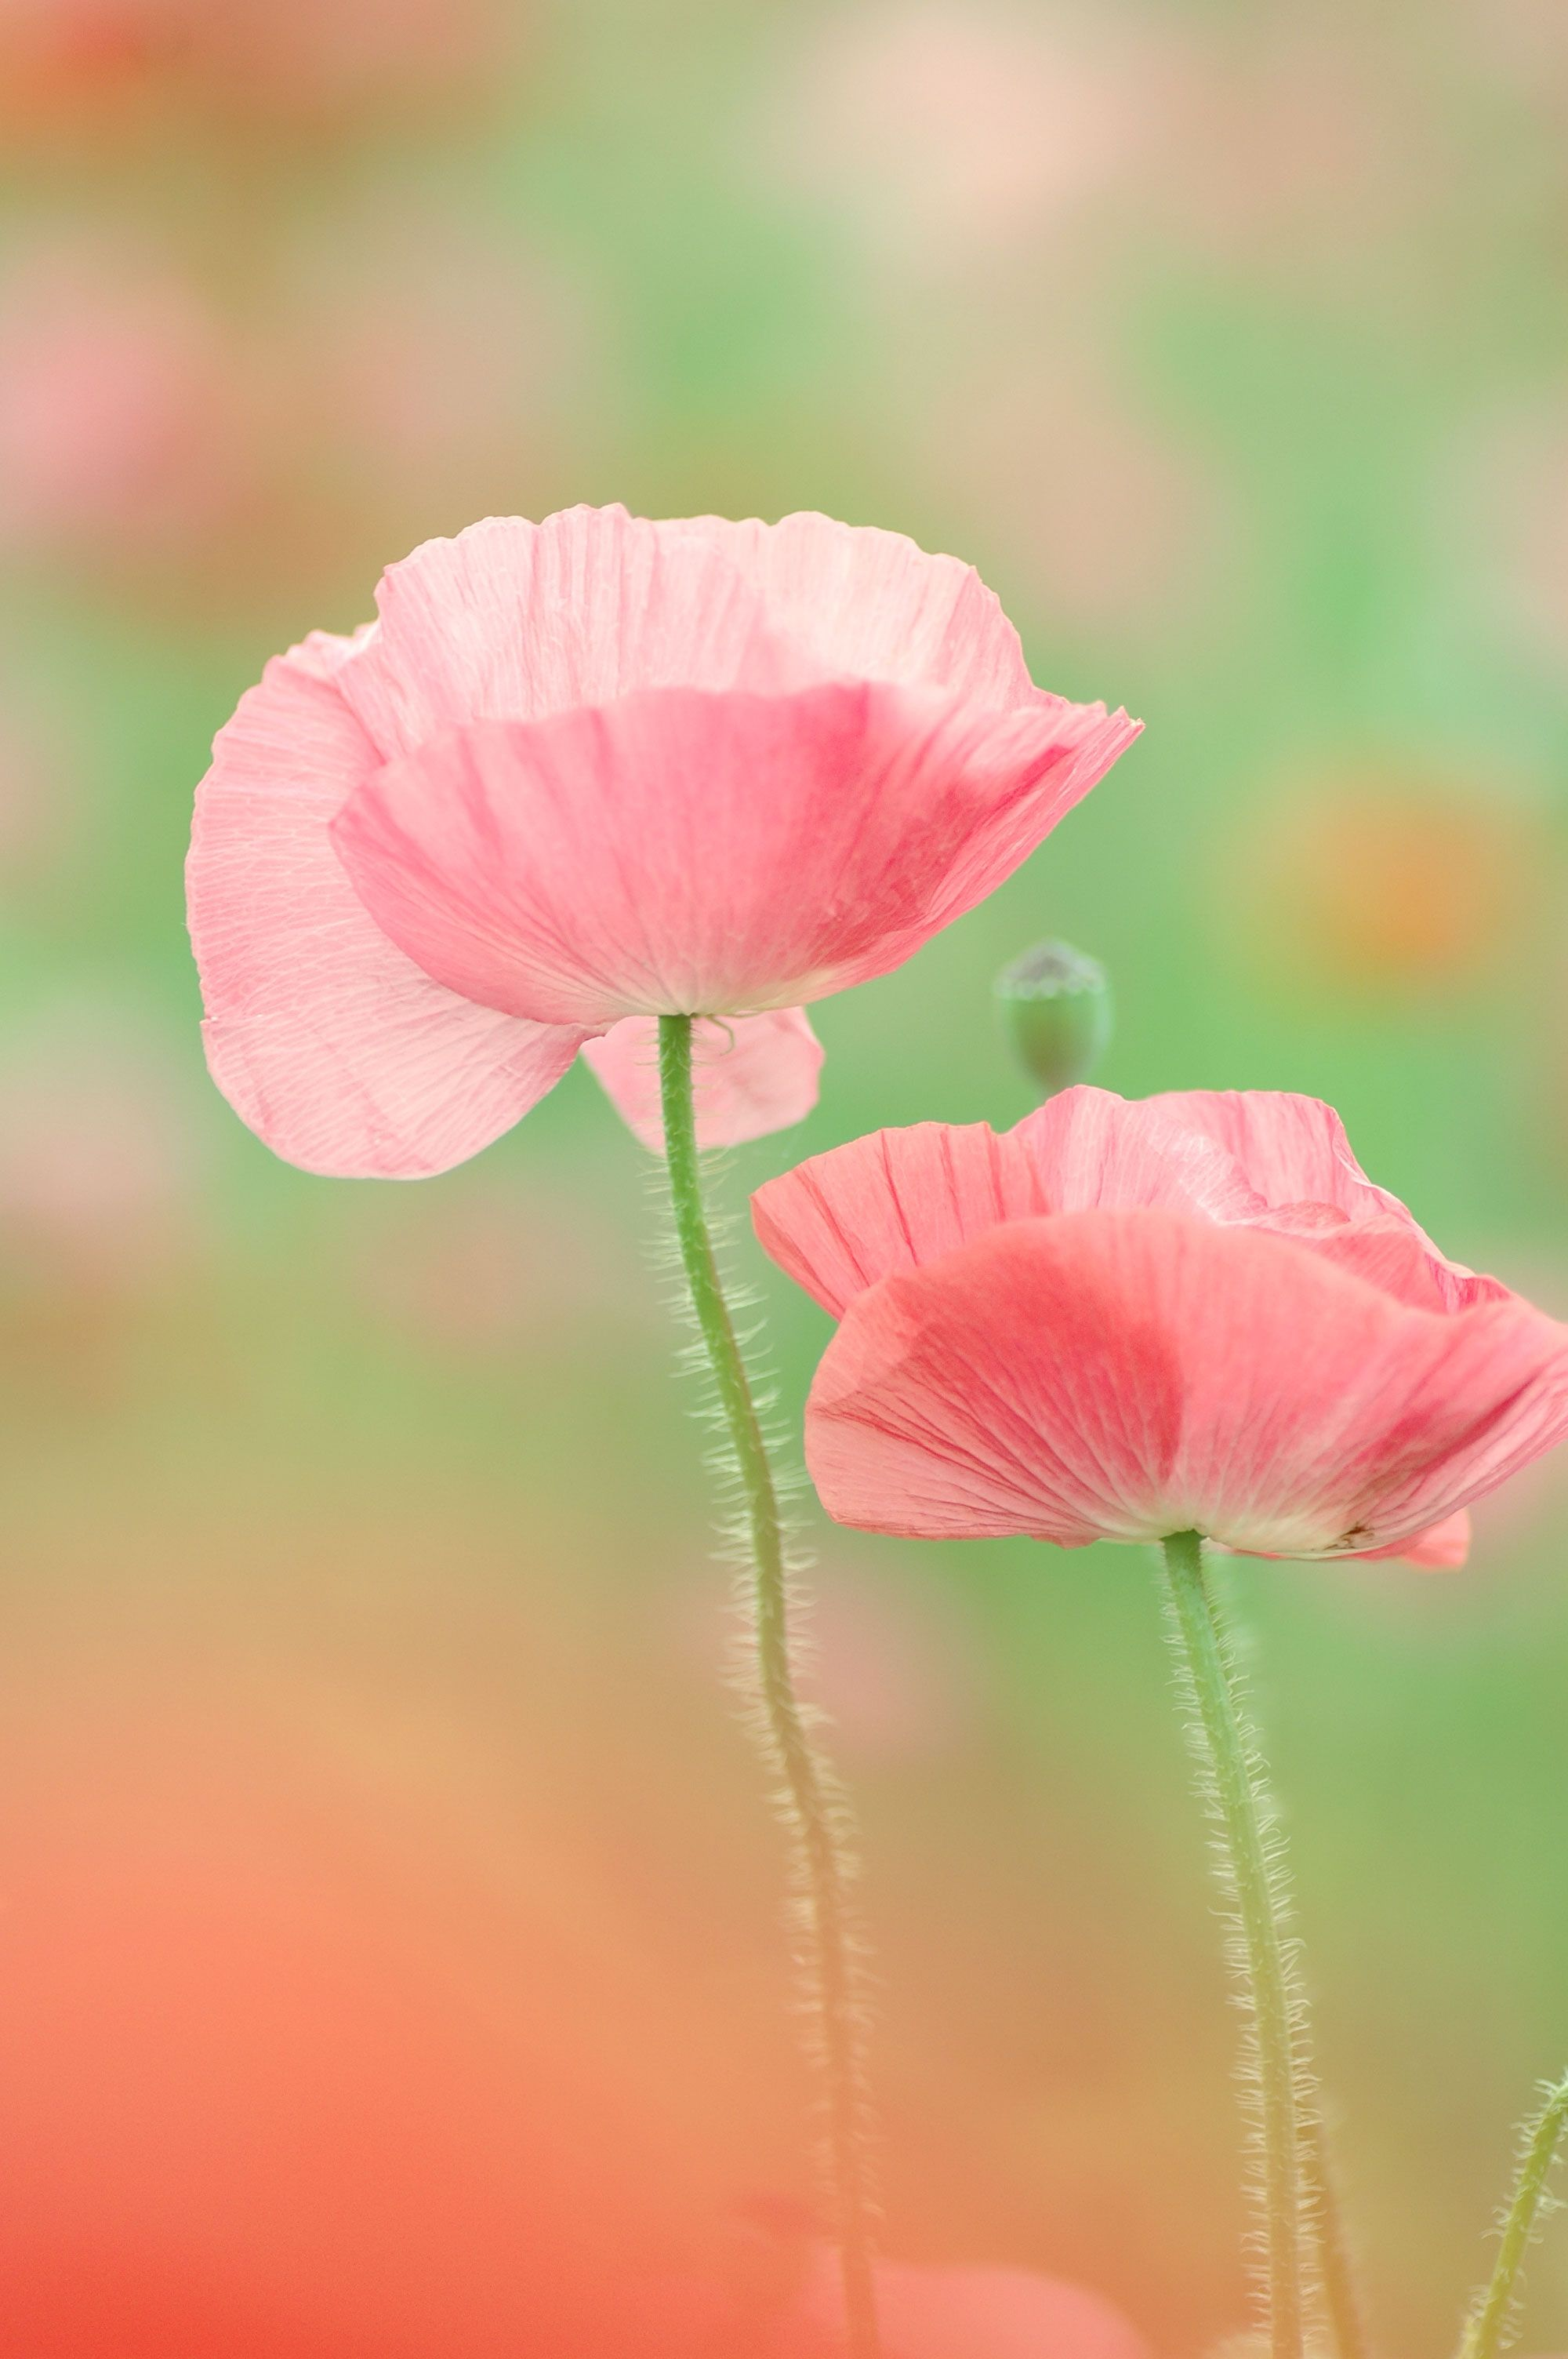 Mohnblume Poppy Beauty Is Everywhere Pinterest Flowers